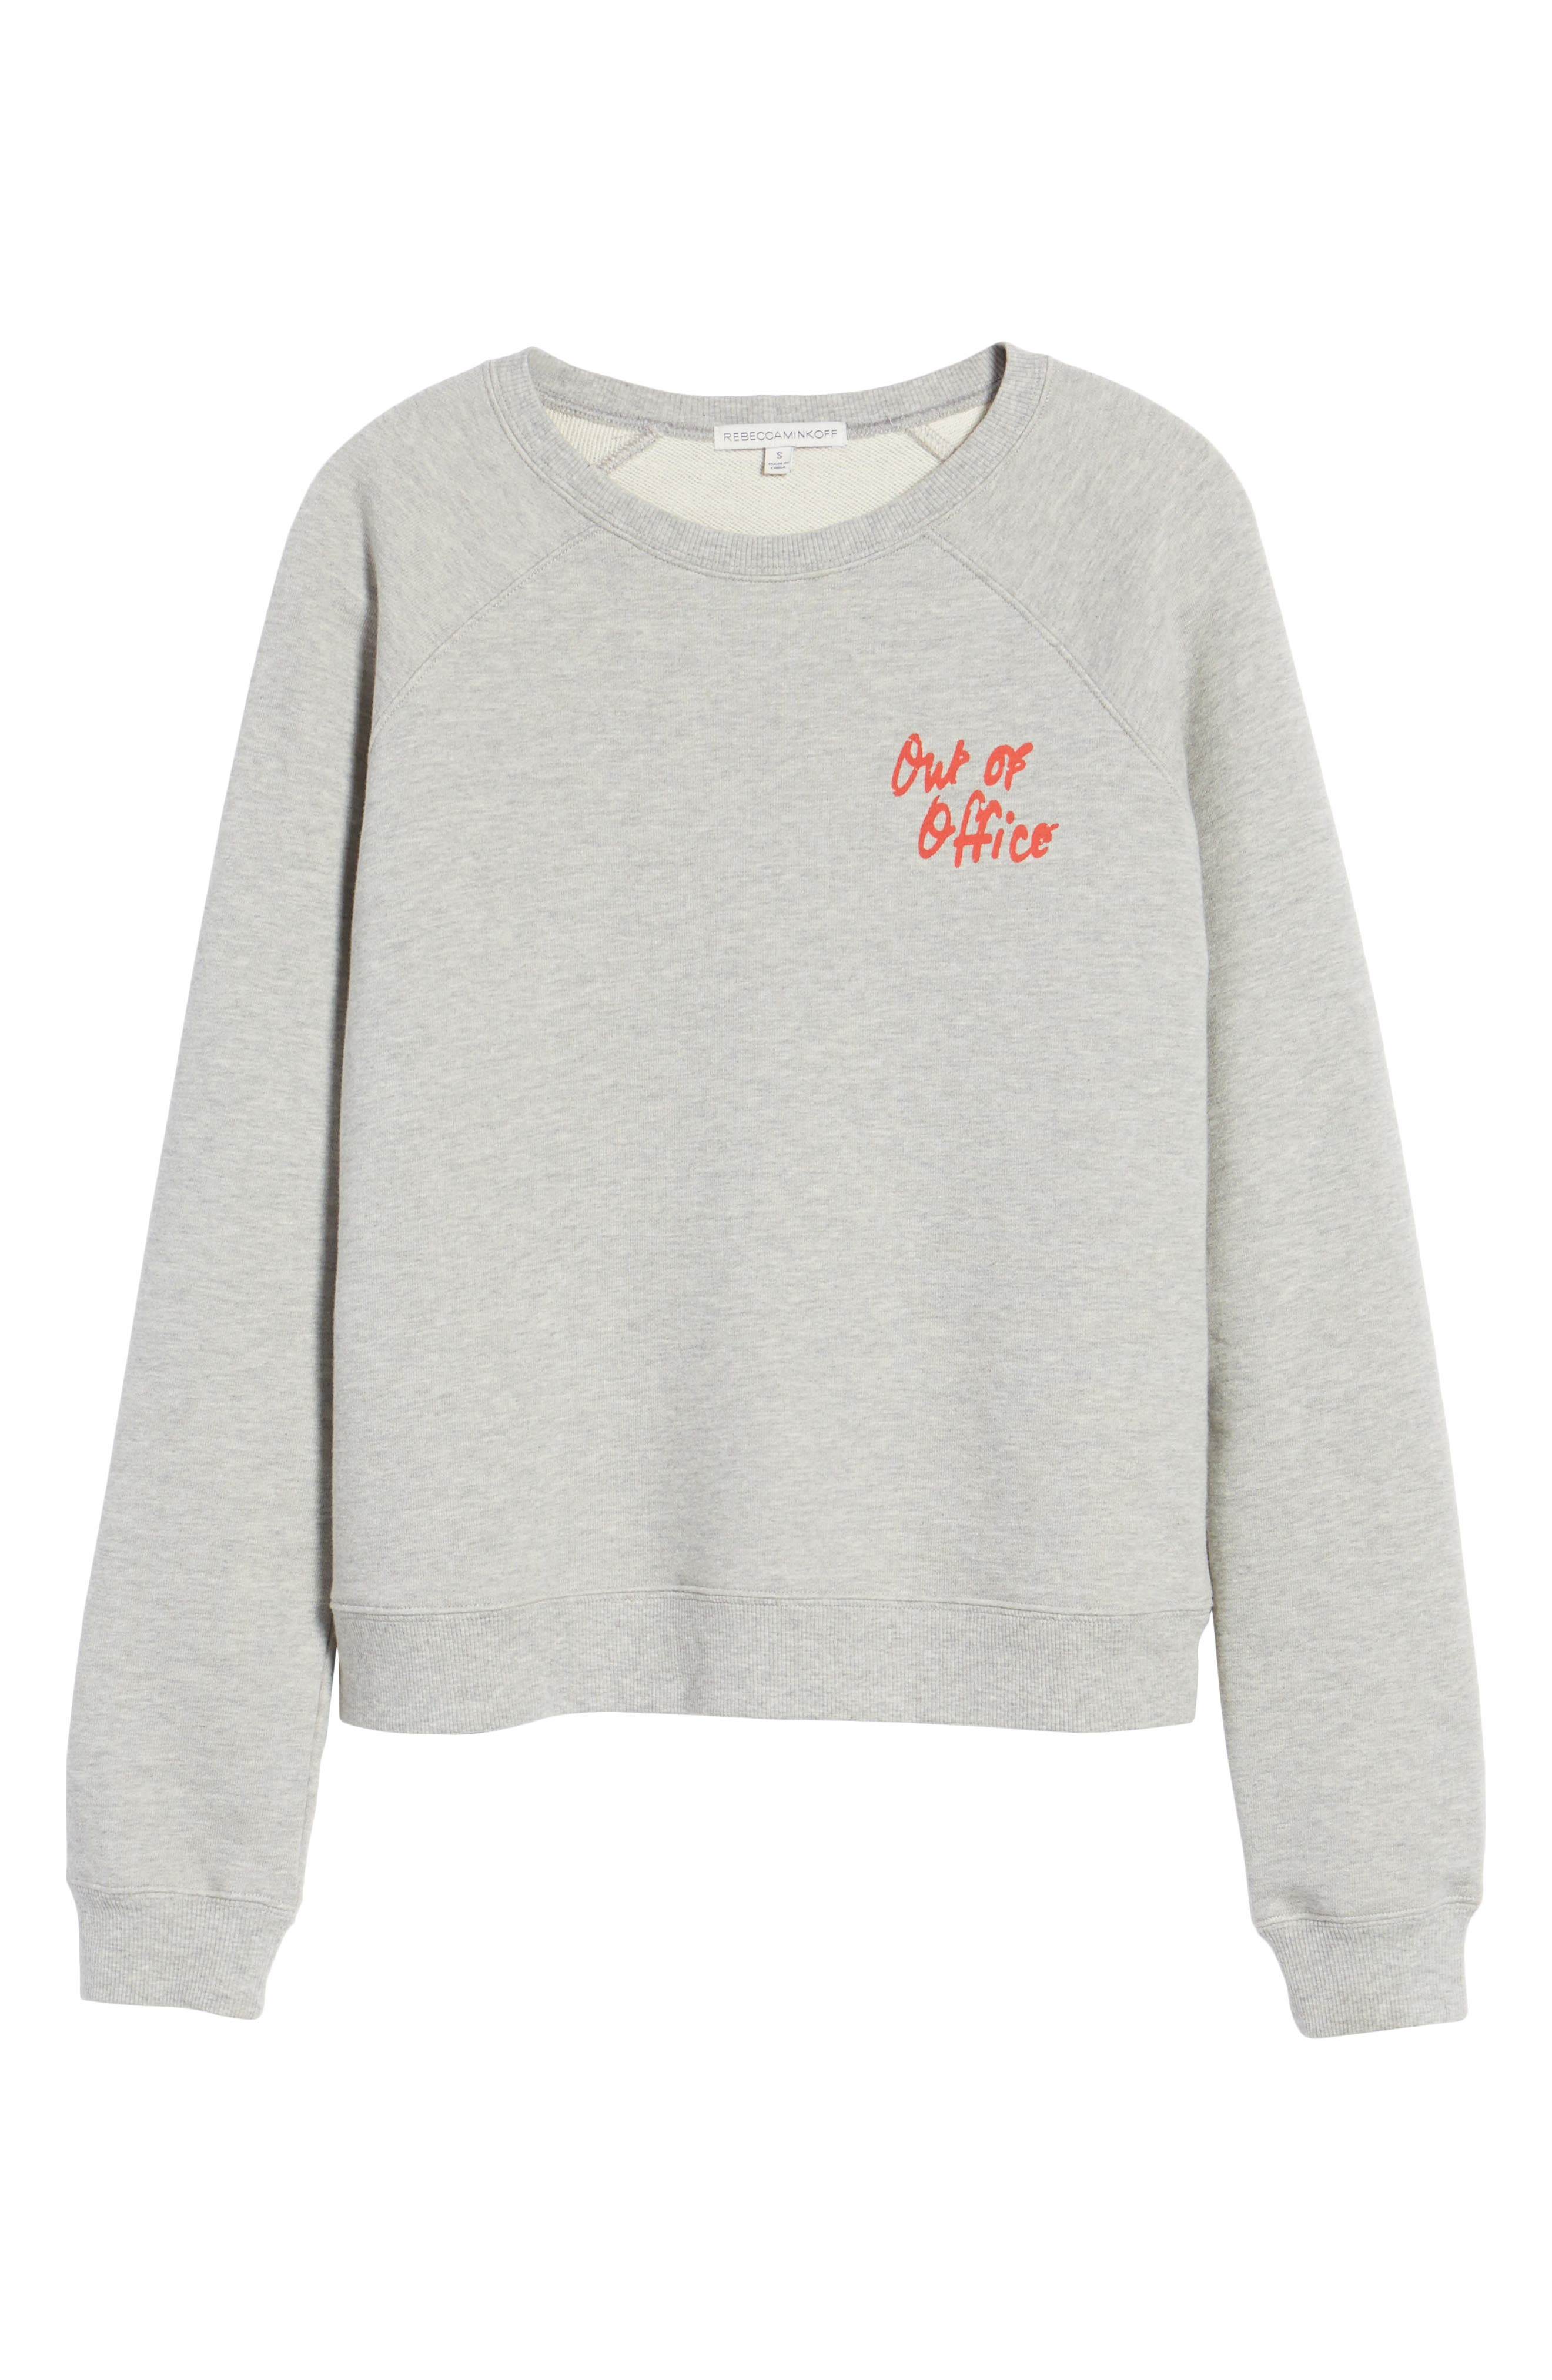 Out of Office Sweatshirt,                             Alternate thumbnail 6, color,                             039